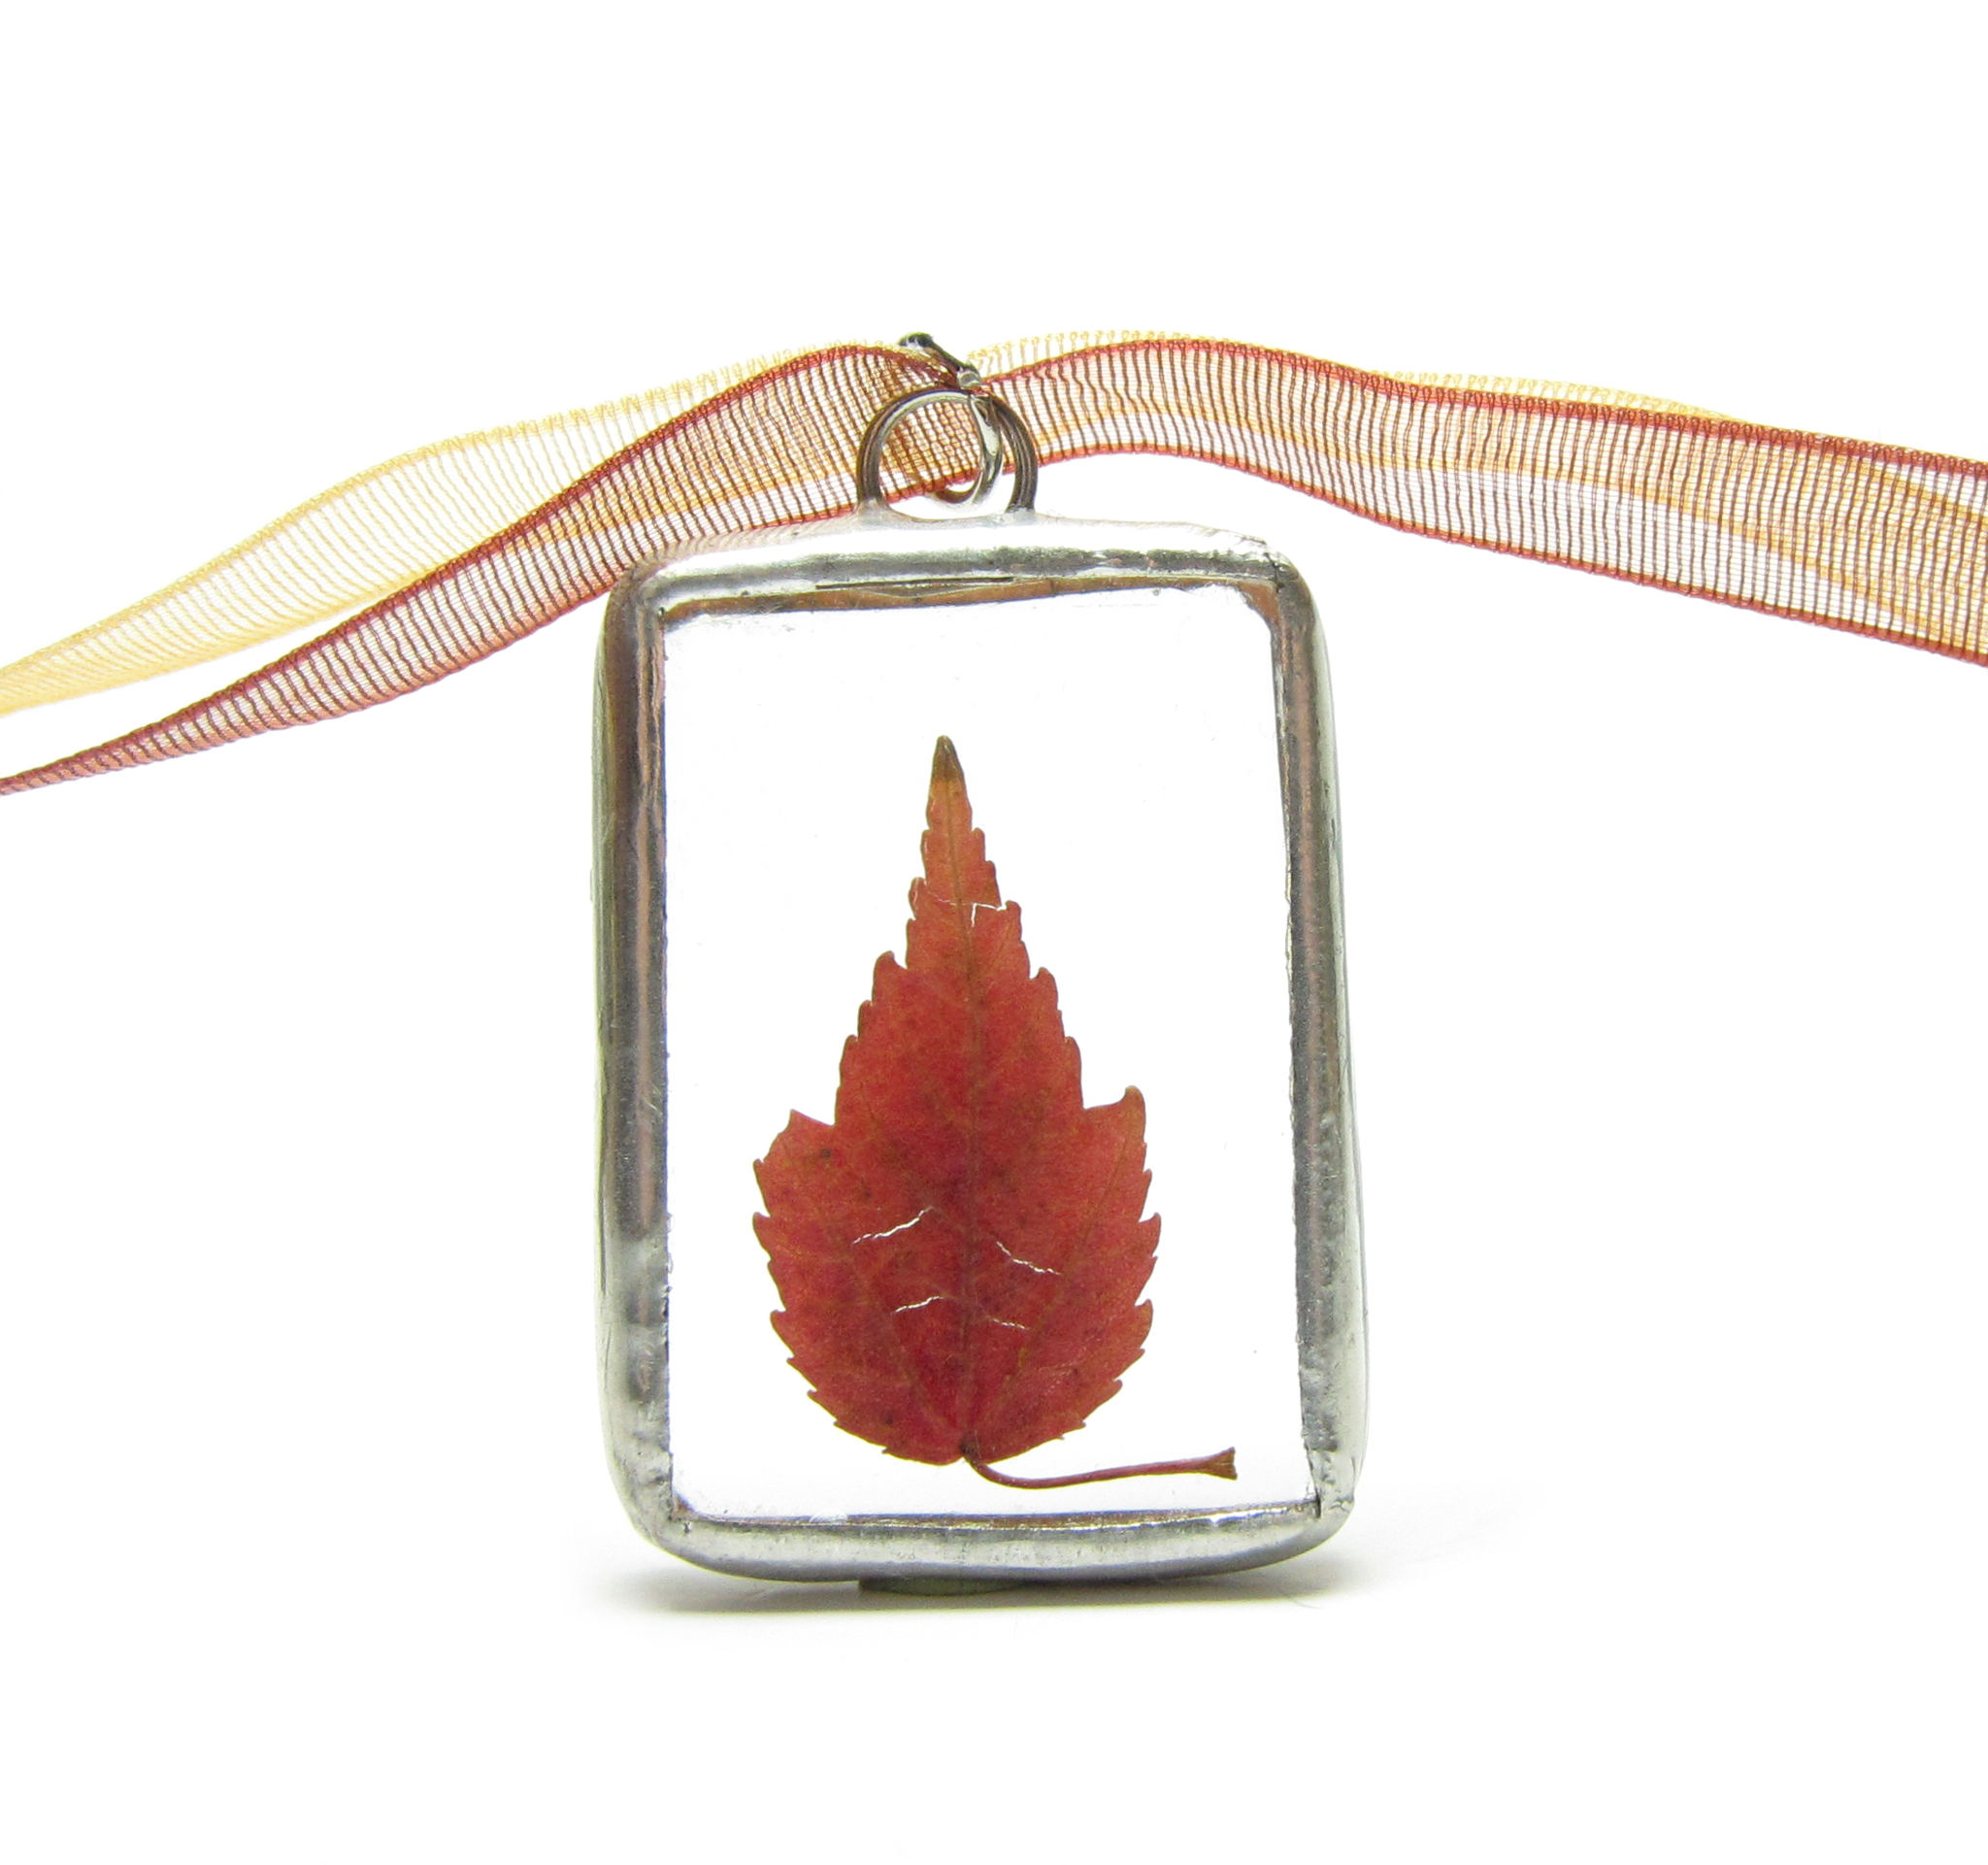 Soldered glass pendant necklace with red maple leaf